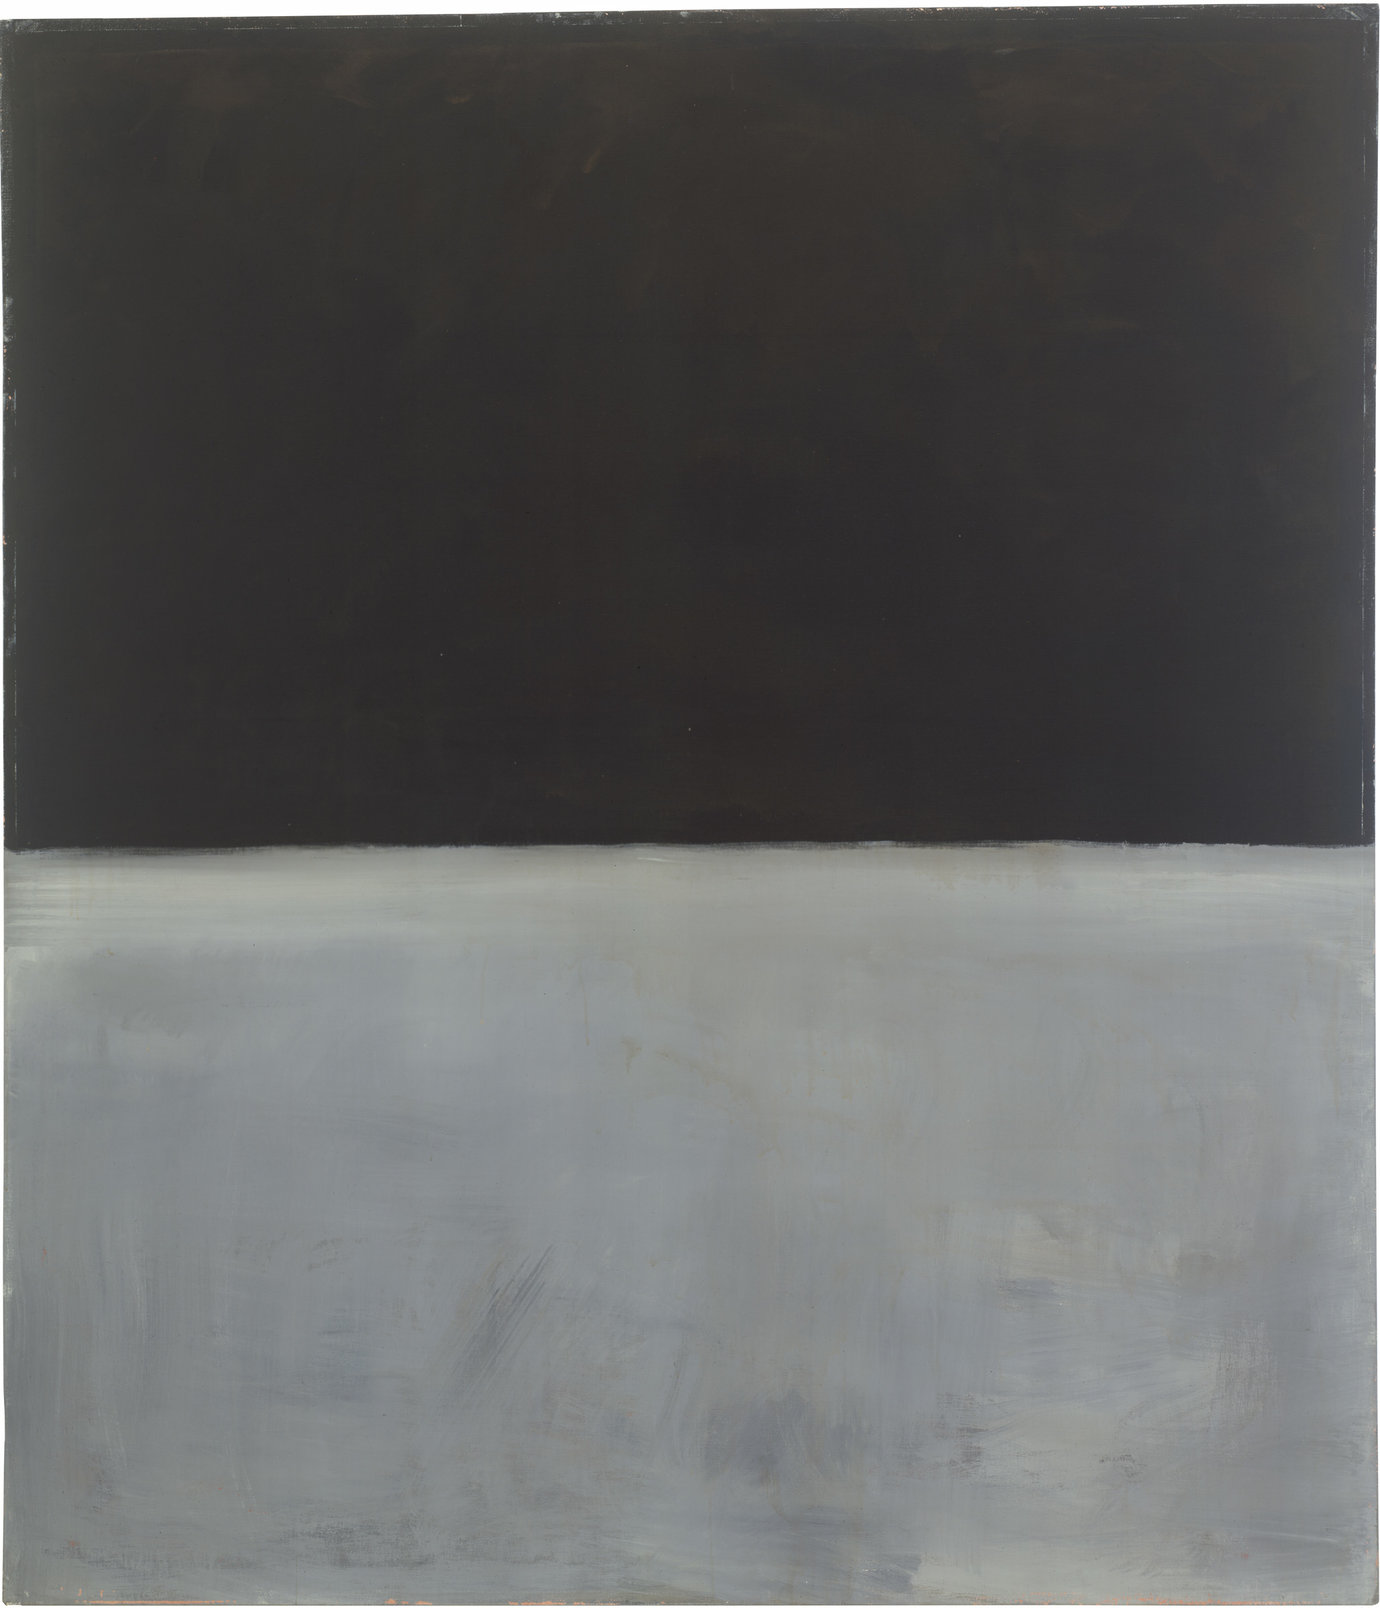 ", 1969. acrylic on canvas, 92"" x 79"" (233.7 cm x 200.7 cm)."